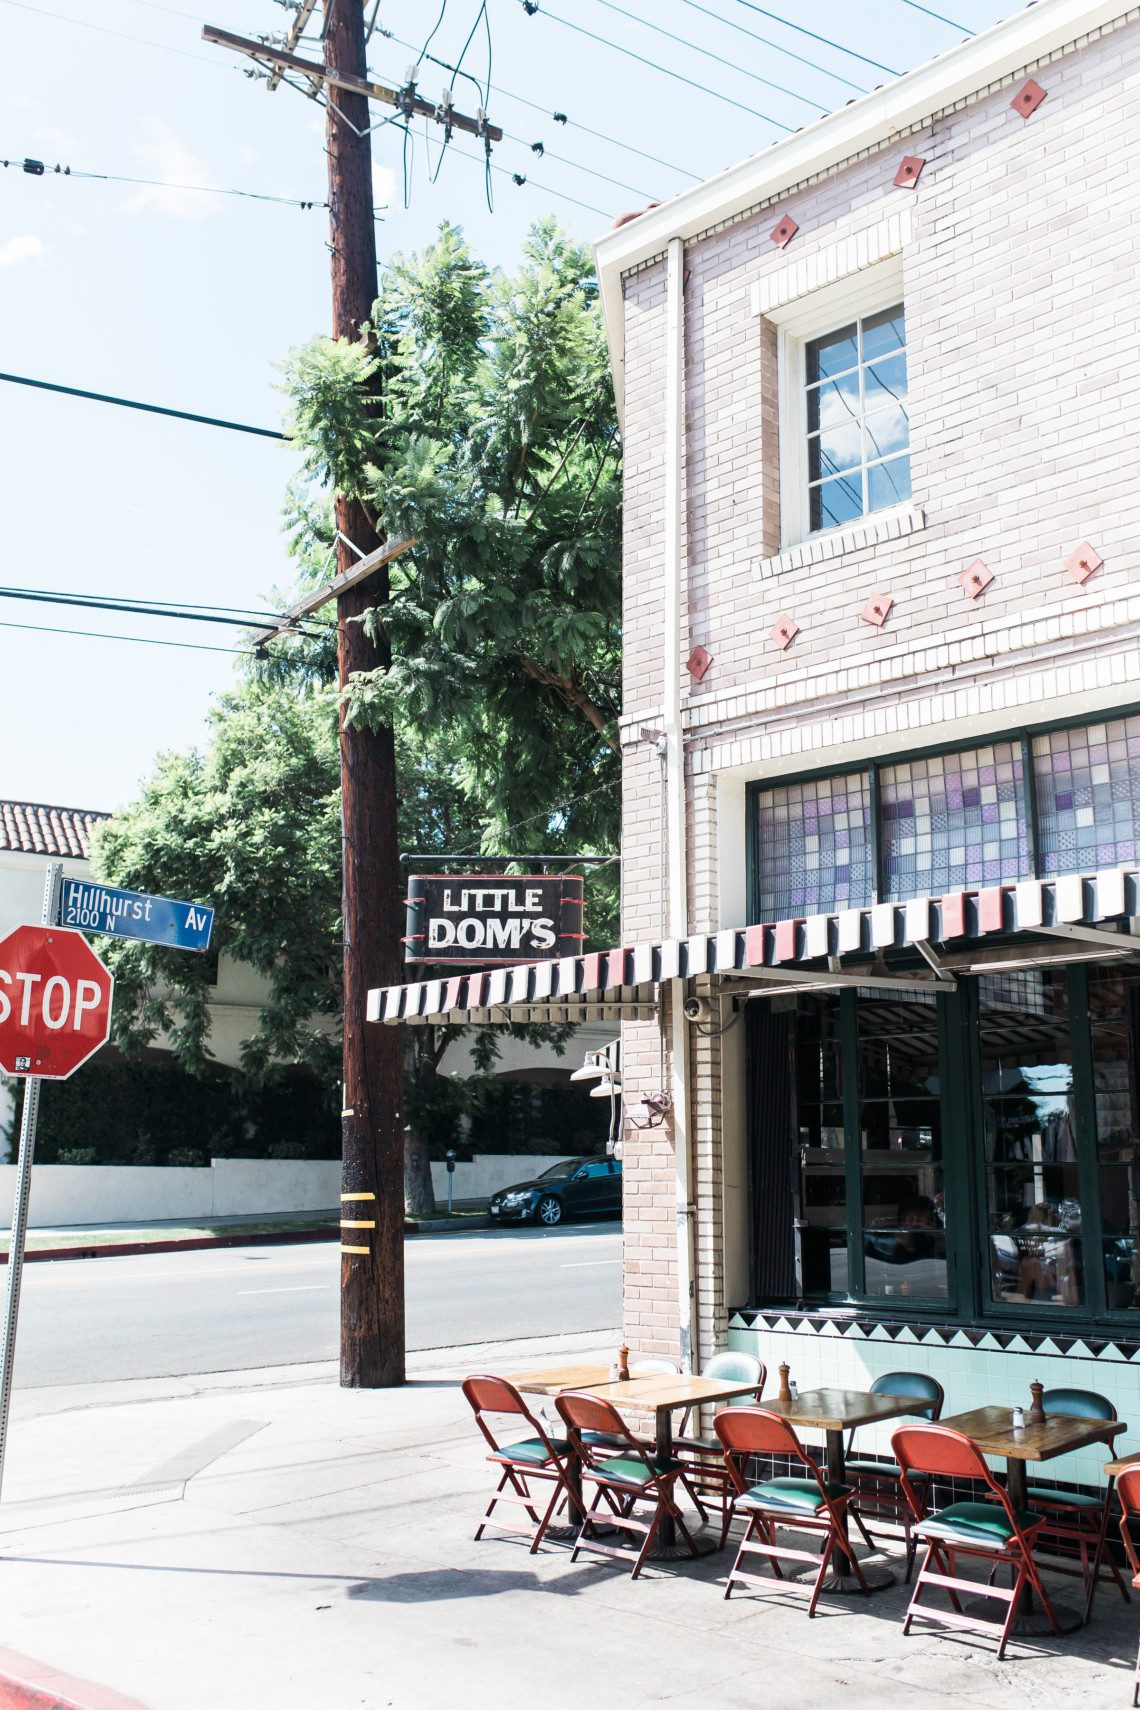 This local guide will tell you everywhere to eat, shop and play in the Los Feliz neighborhood of Los Angeles including Night + Market Song.